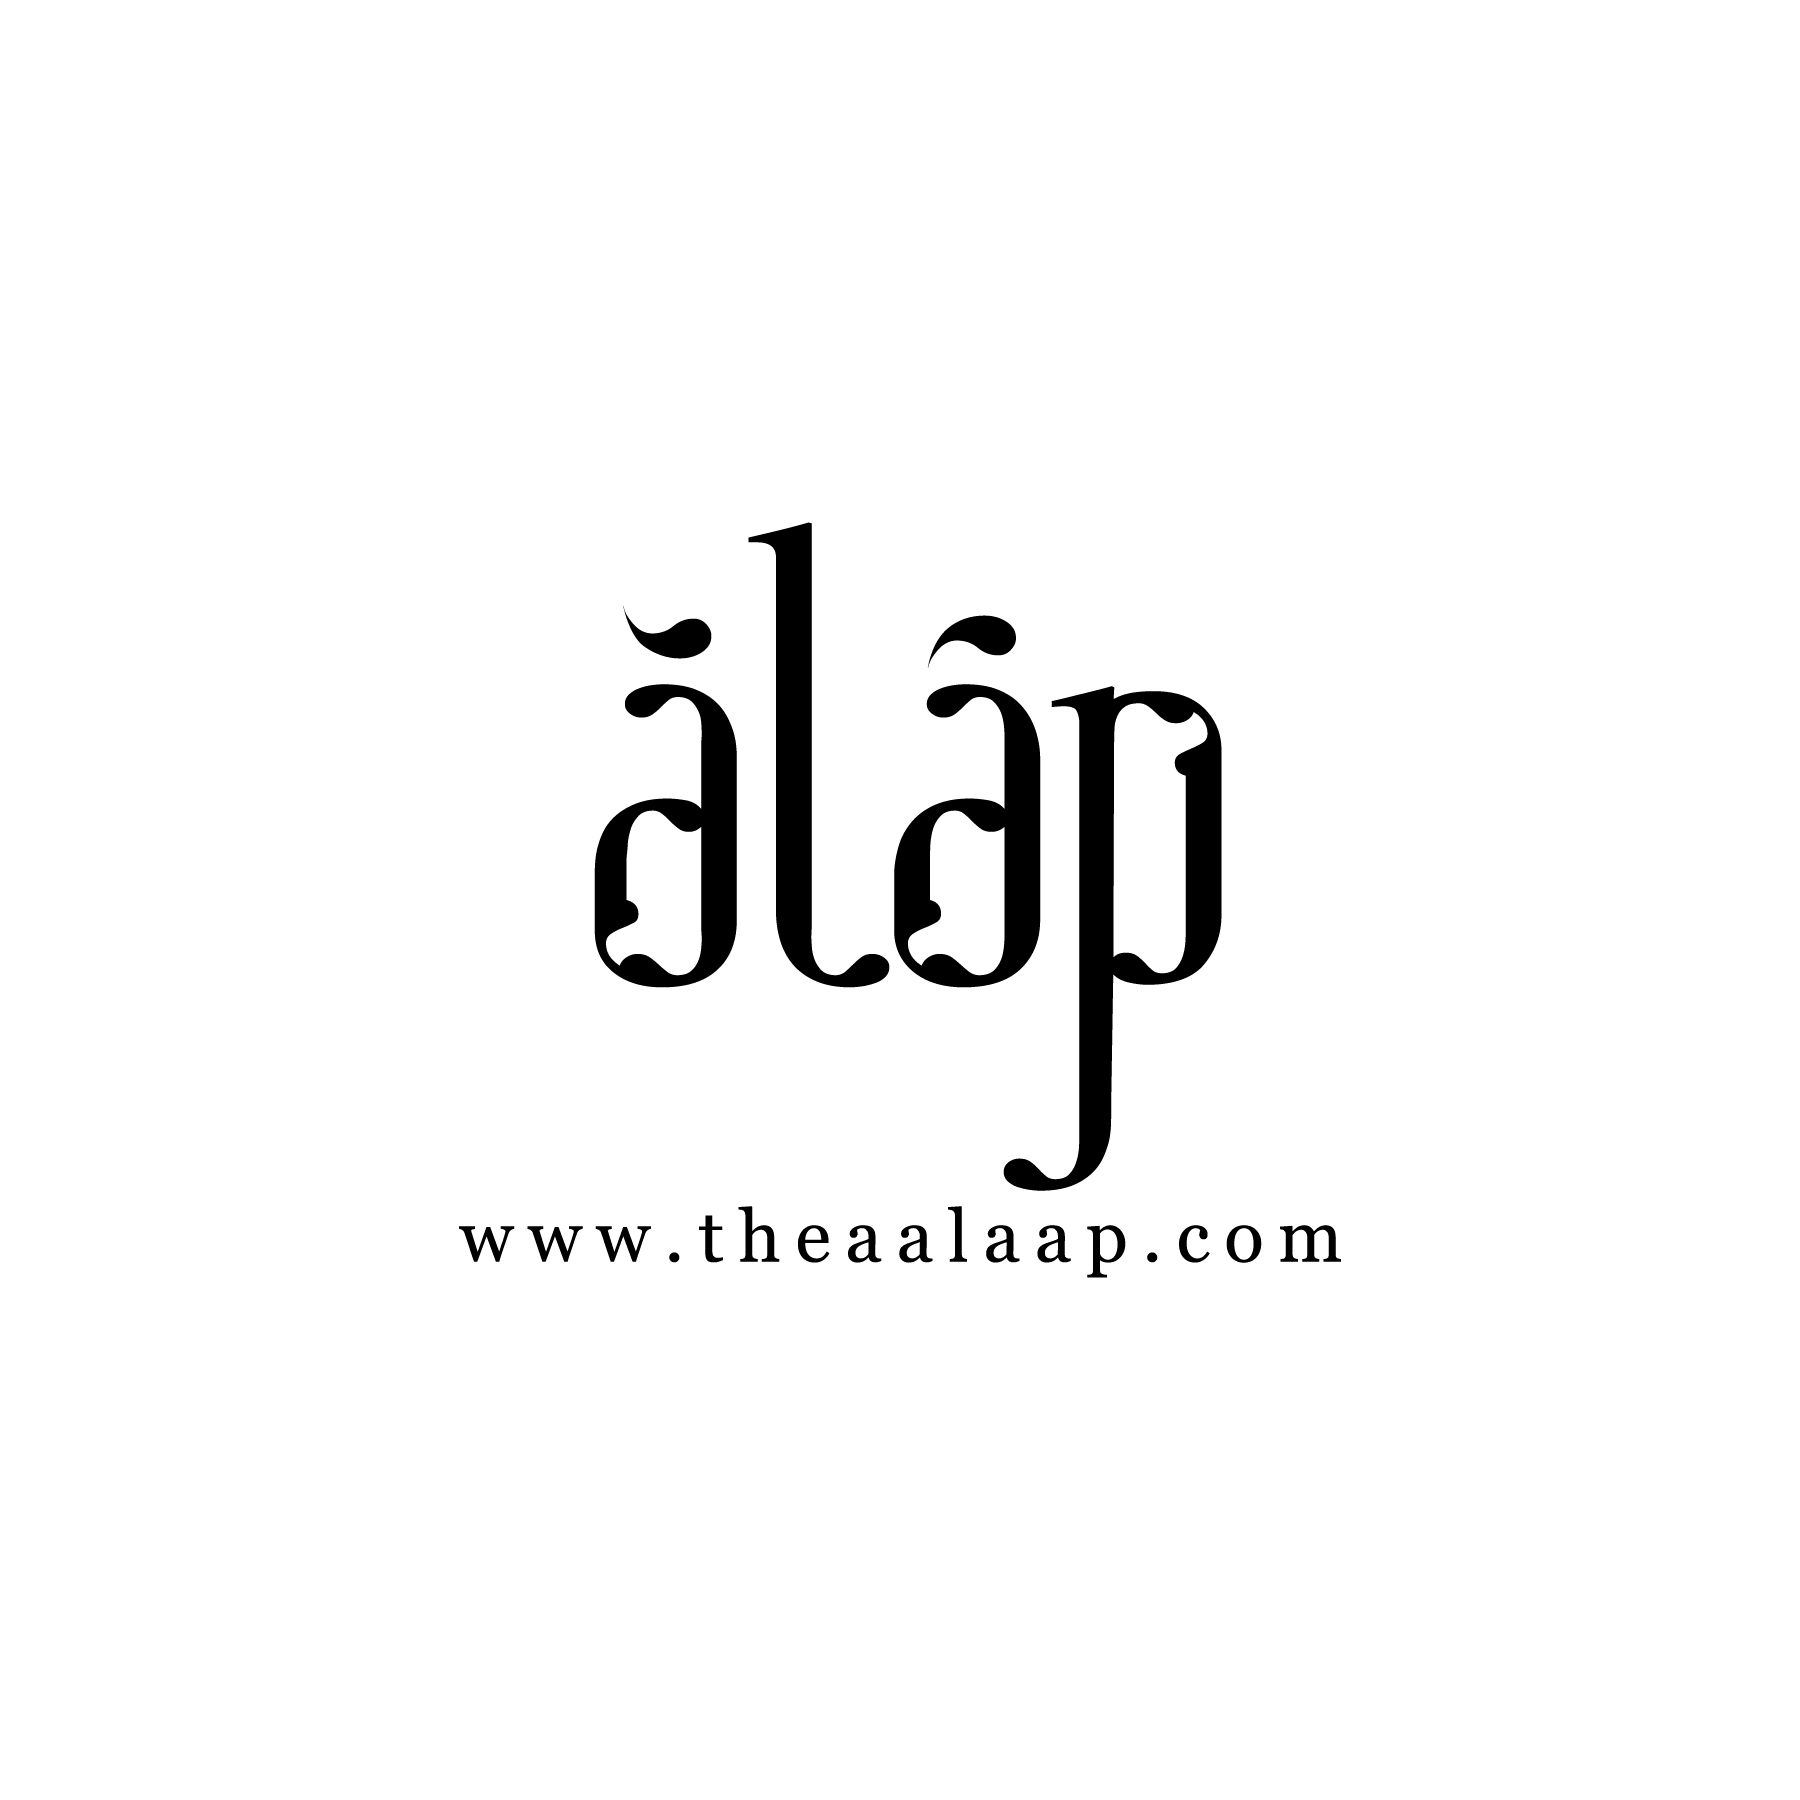 Aalaap Podcasts